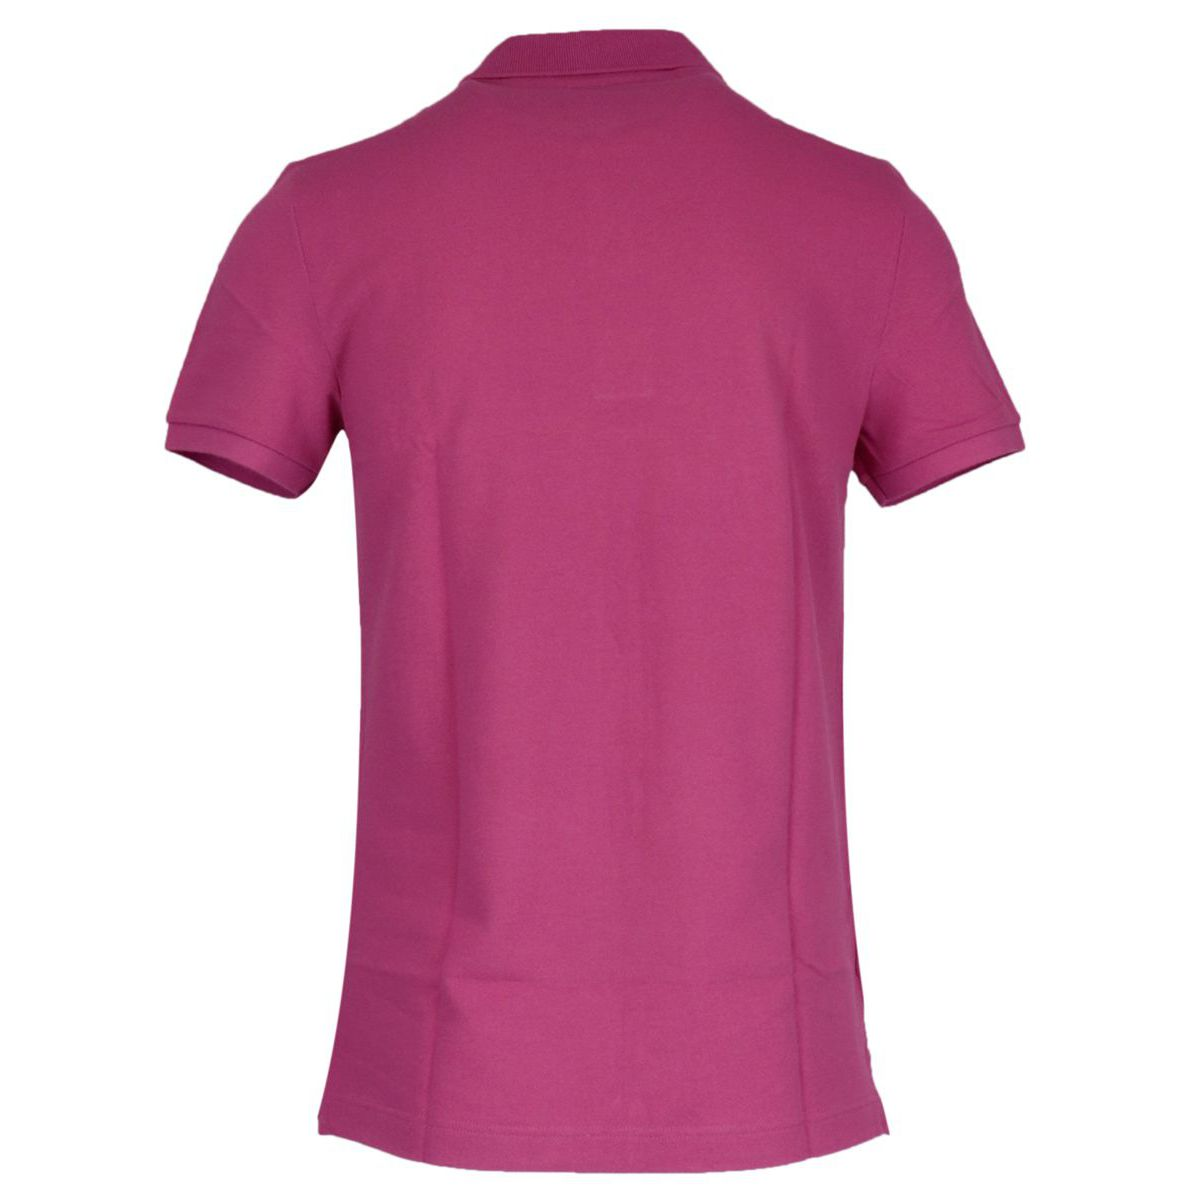 2-button polo shirt in slim cotton Cyclamen Lacoste